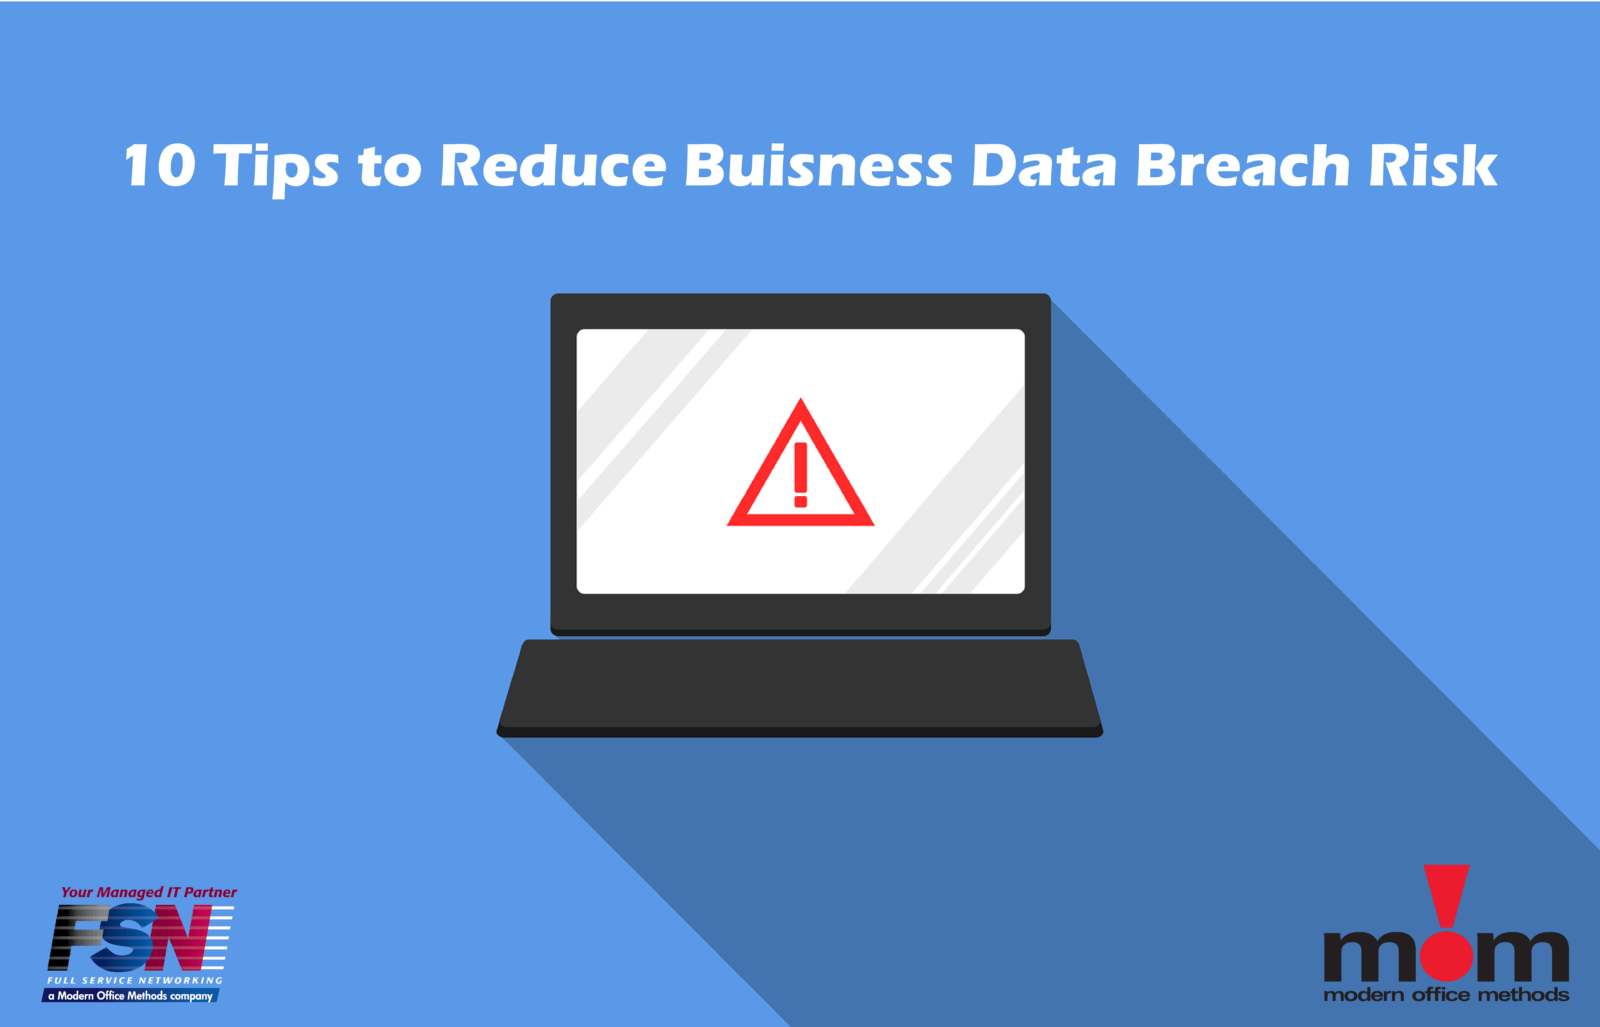 10 Tips to Reduce Business Data Breach Risk